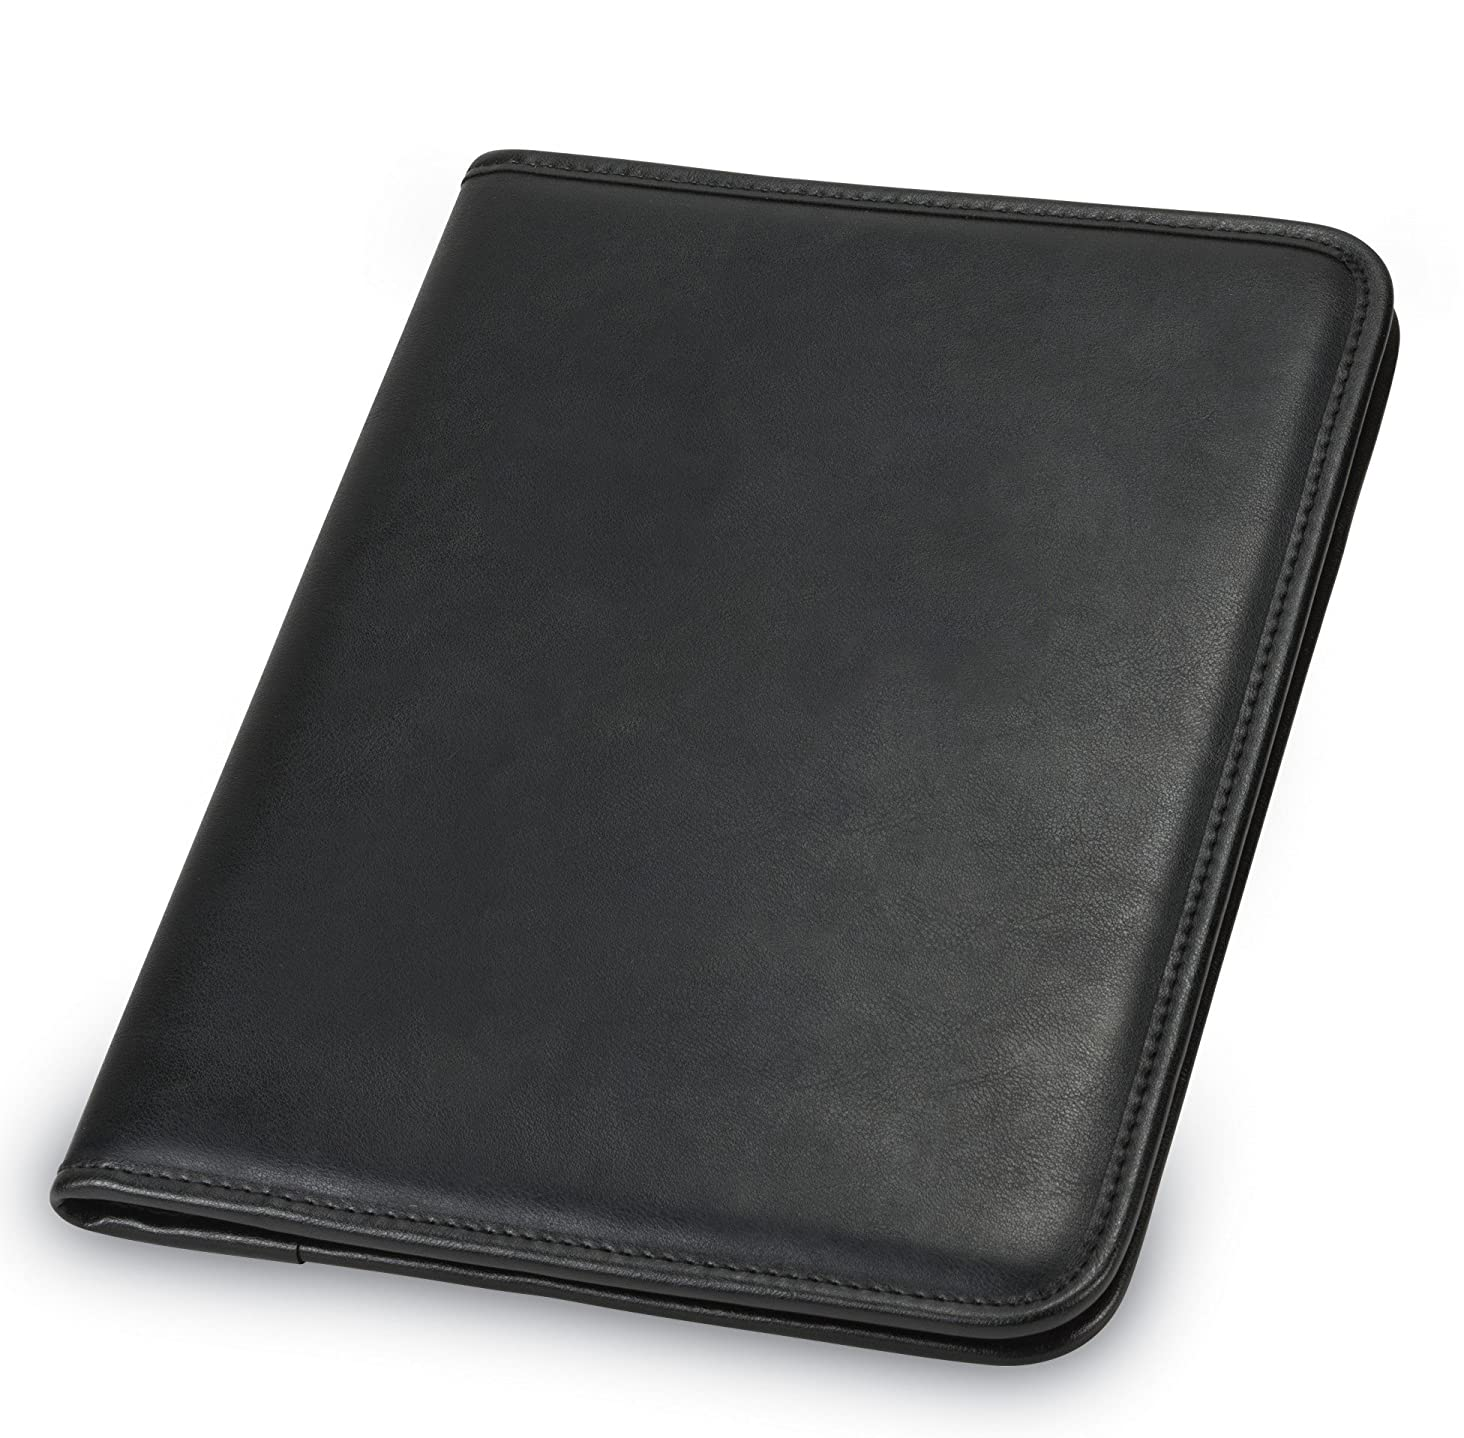 Samsill Professional Padfolio - Resume Portfolio / Business Portfolio, Document Storage, 8.5 x 11 Writing Pad, Black